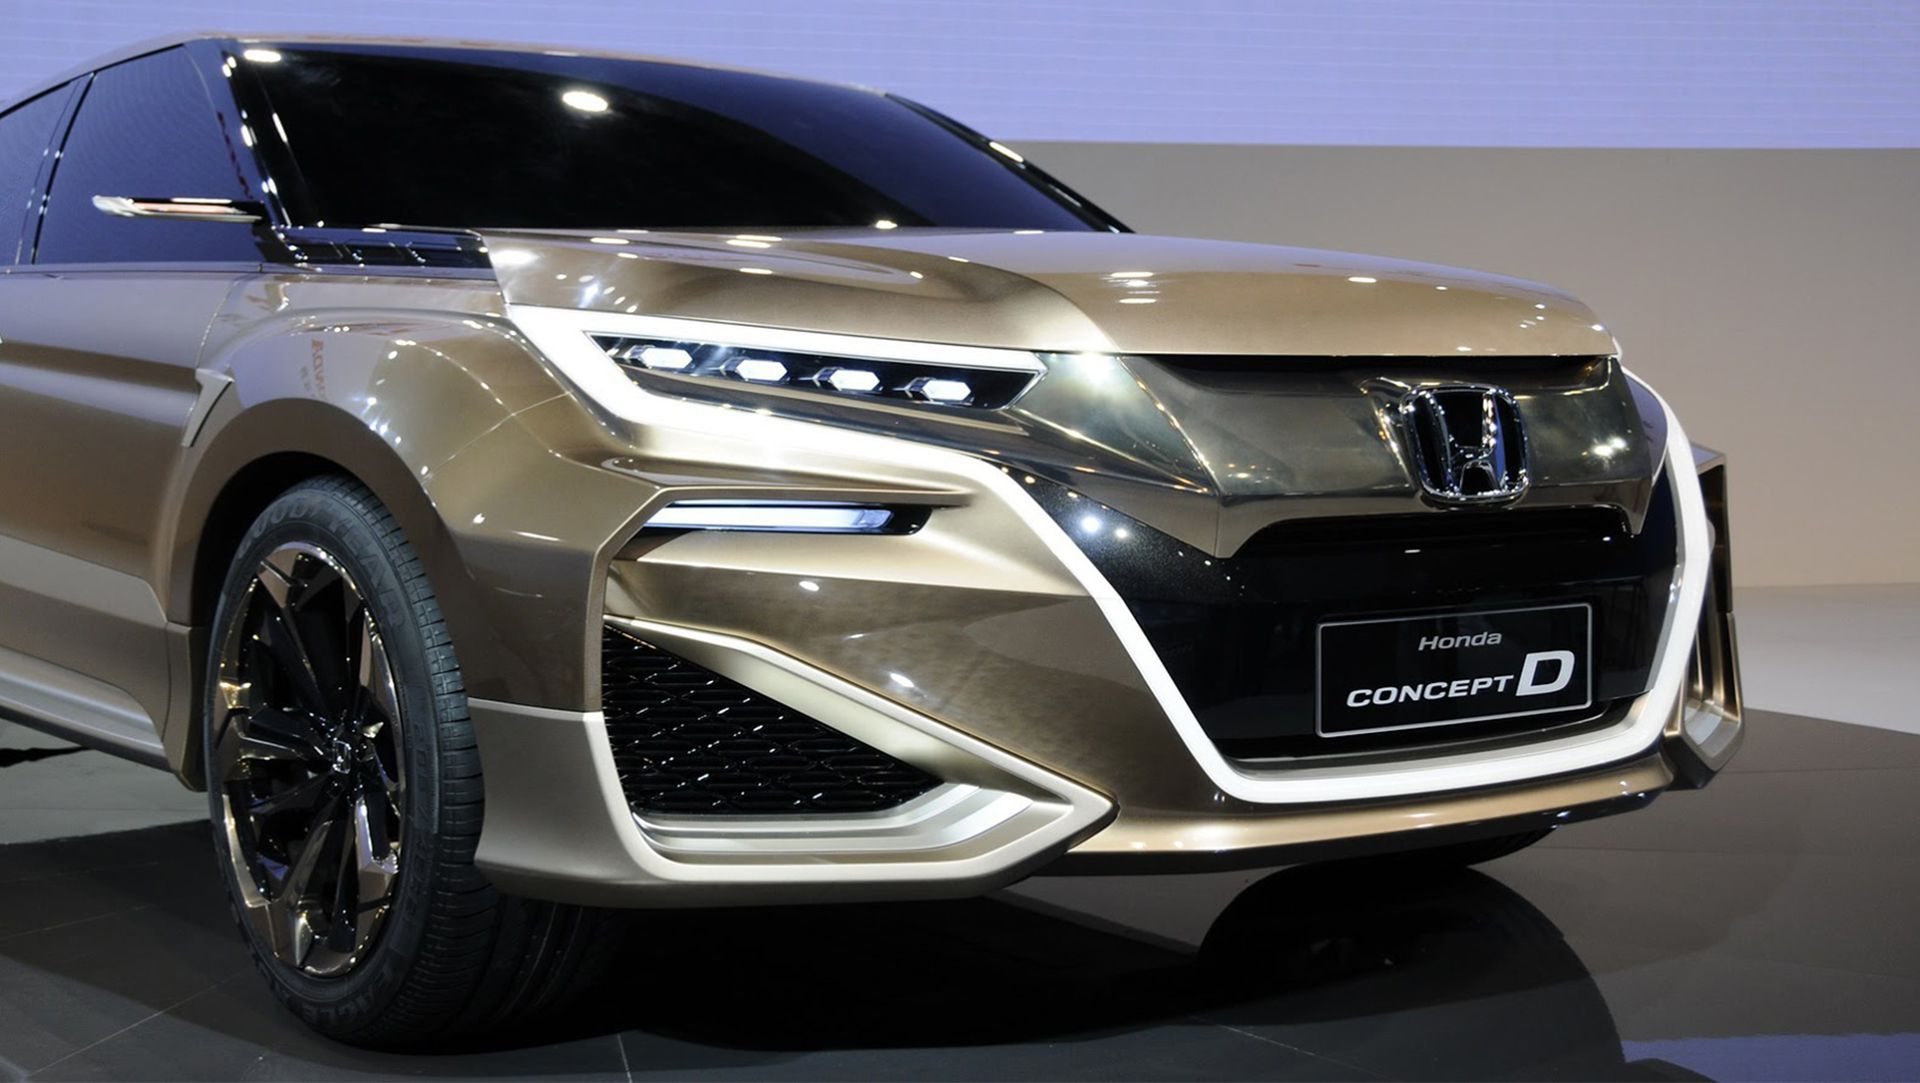 hight resolution of  honda new concept d at shanghai auto show 2015